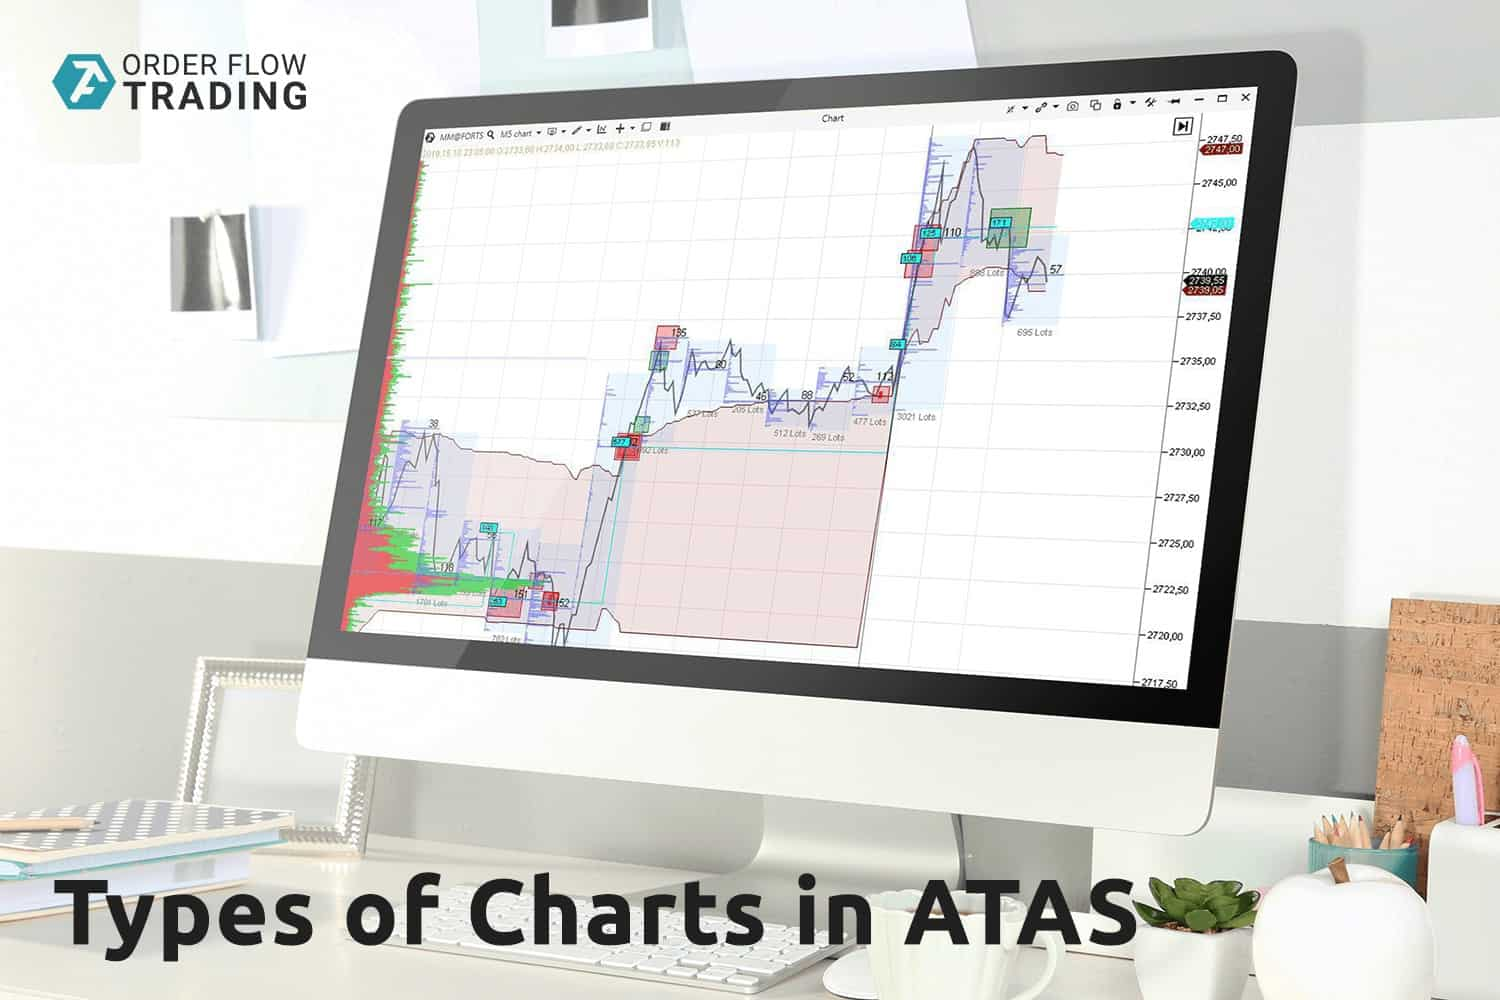 5 types of exchange charts for a quick analysis of the MOEX stocks and currencies